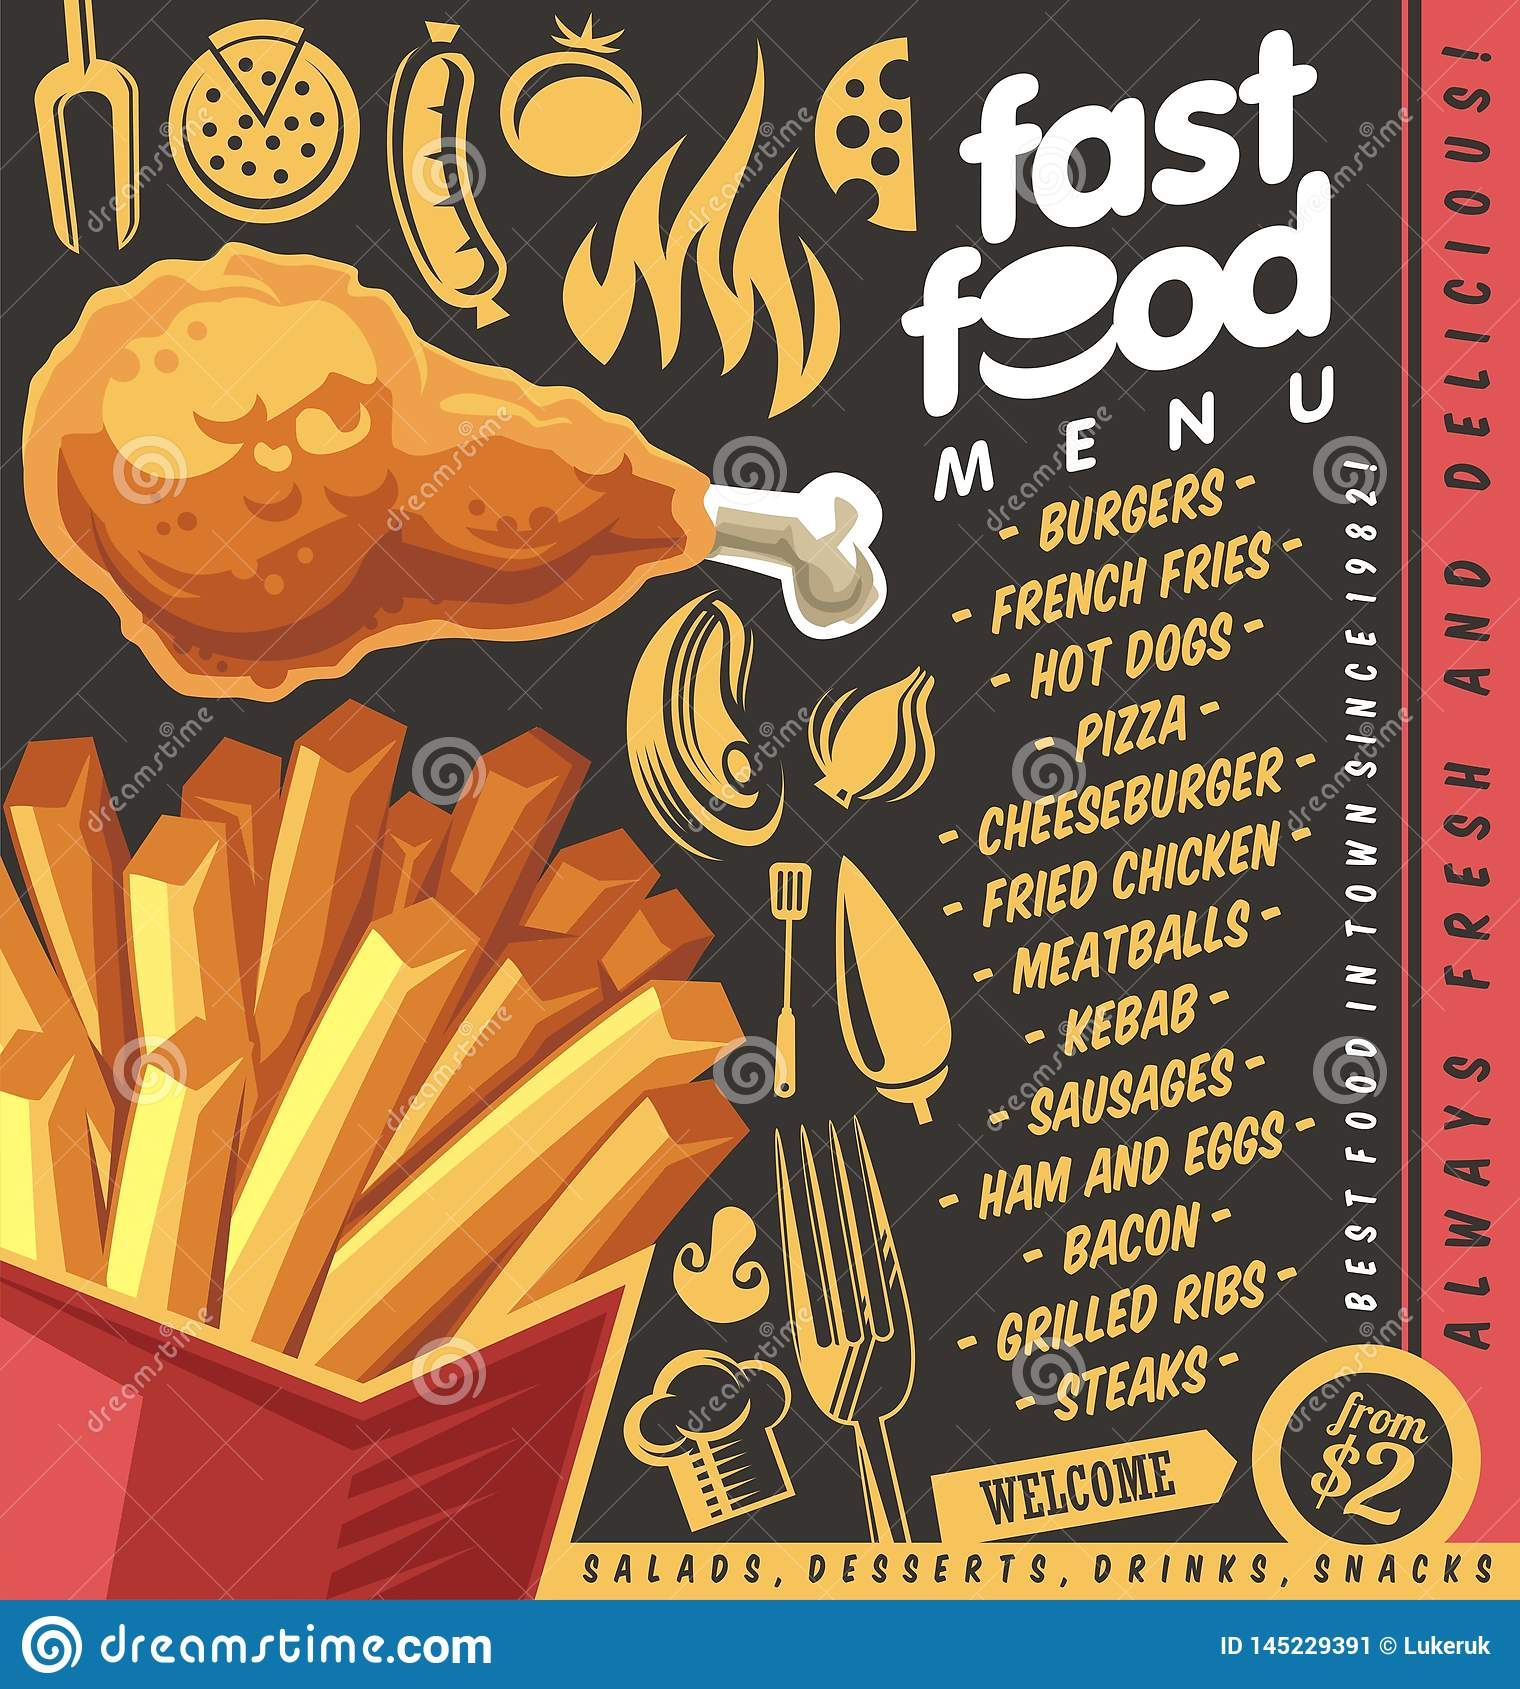 Fast Food Restaurant Menu Design With French Fries And Fried